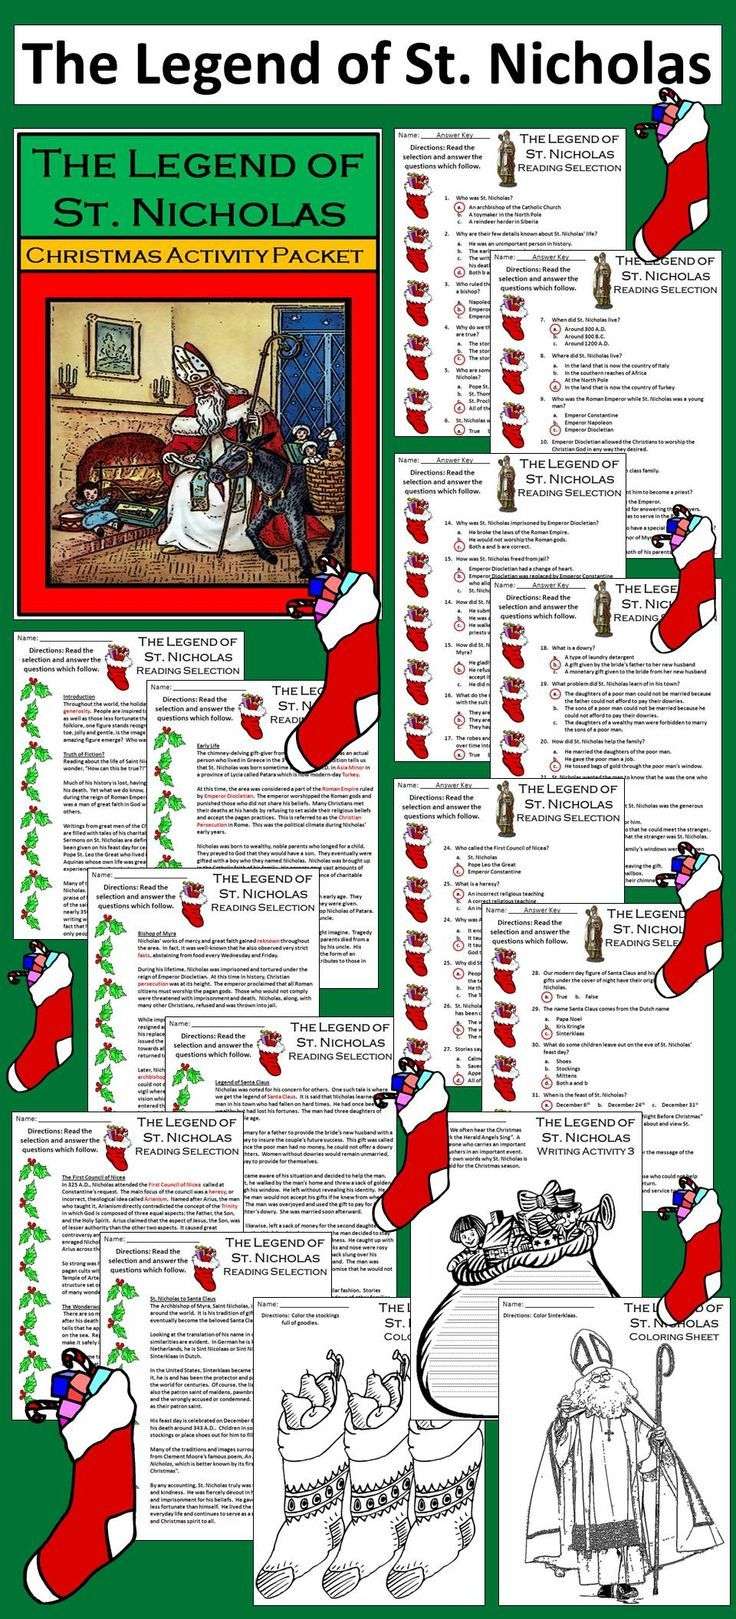 Legend of St. Nicholas Christmas Activity Packet: Details the life, works, and legends of St. Nicholas (AKA Santa Claus), Archbishop of Myra, of the 3rd century A.D. Packet includes both color and b/w versions of all pages.  Contents include: * 6 Christmas Reading Comprehension Selections * 6 Christmas Reading Comprehension Quizzes * 3 Christmas Writing Activities * 1 Fireplace & Stocking Craft * 5 Coloring Sheets * Answer Keys   #Christmas #Saint #Nicholas #Teacherspayteachers #Language…